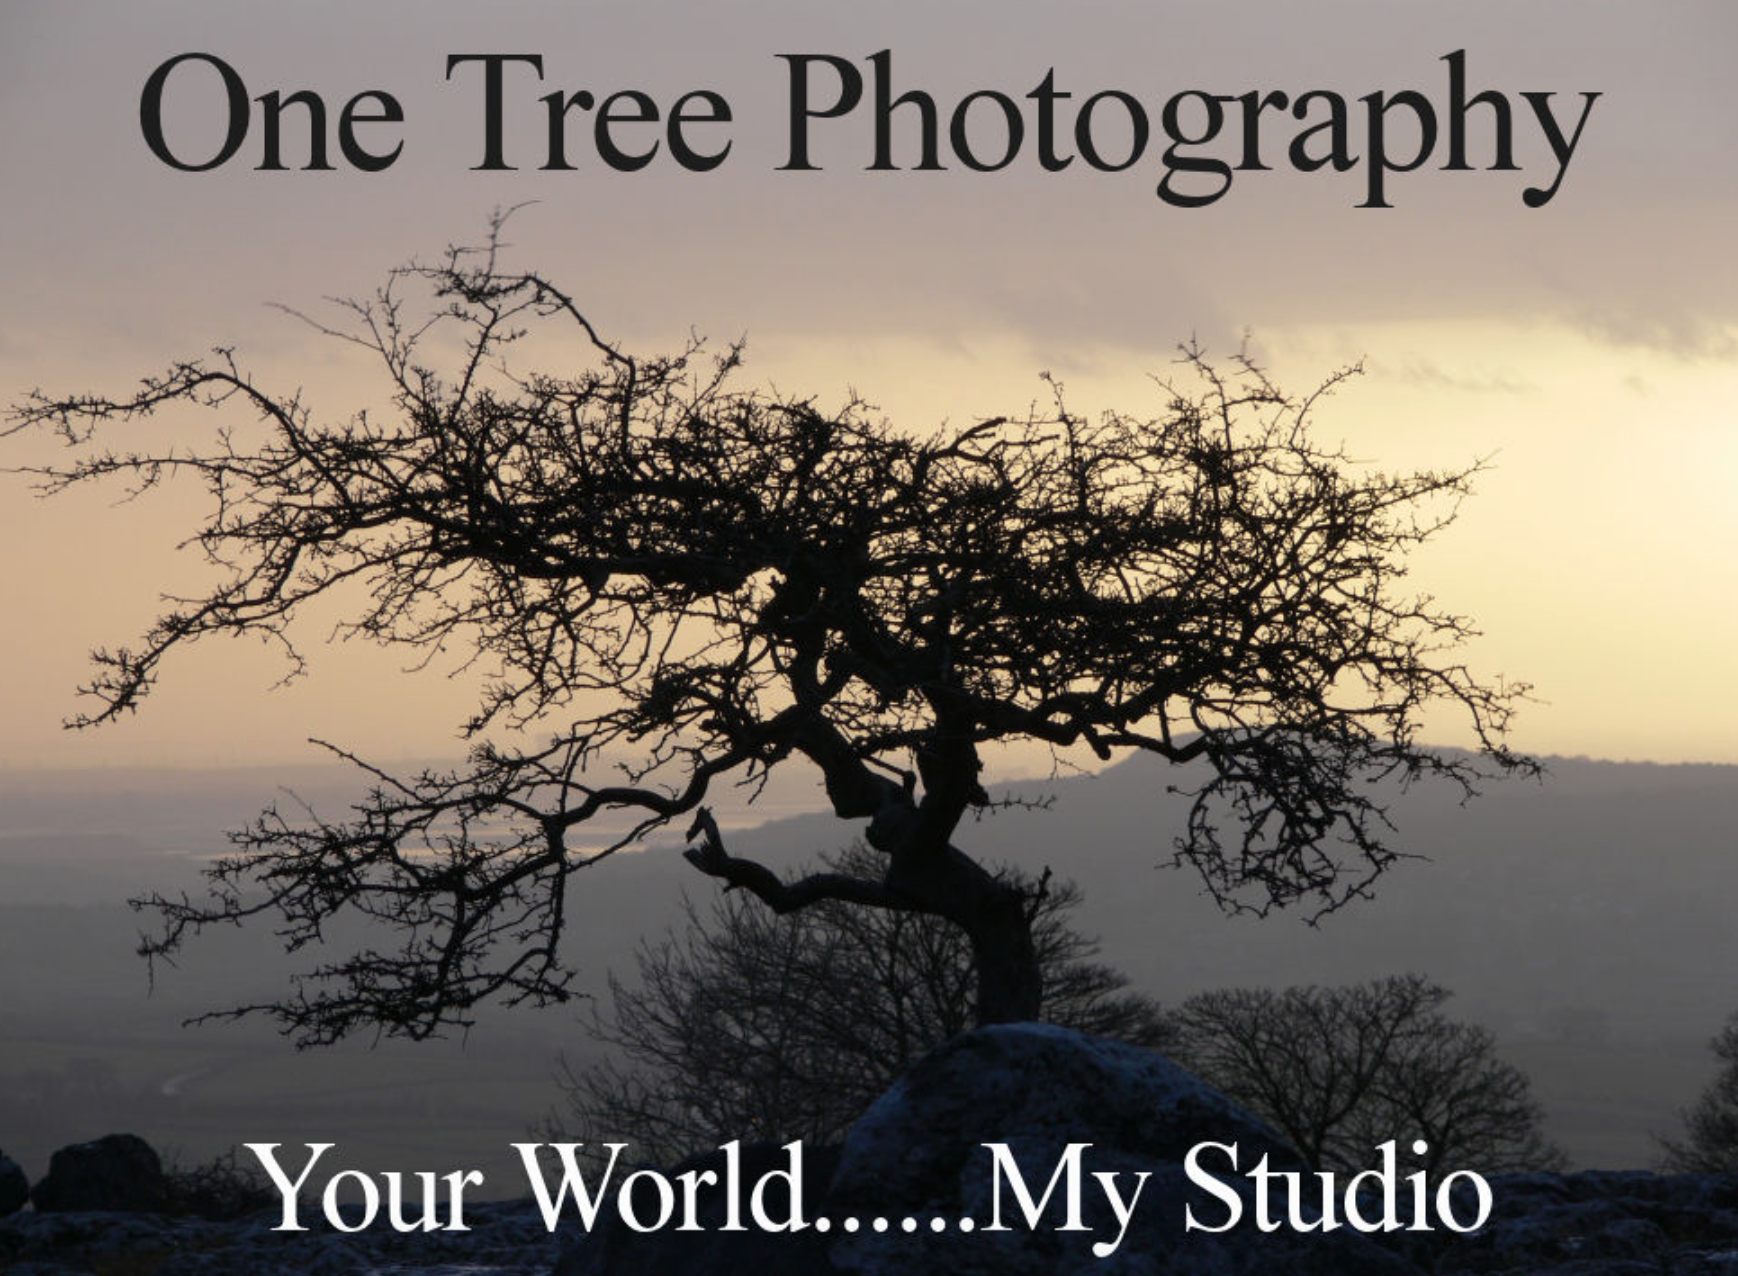 One Tree Photography